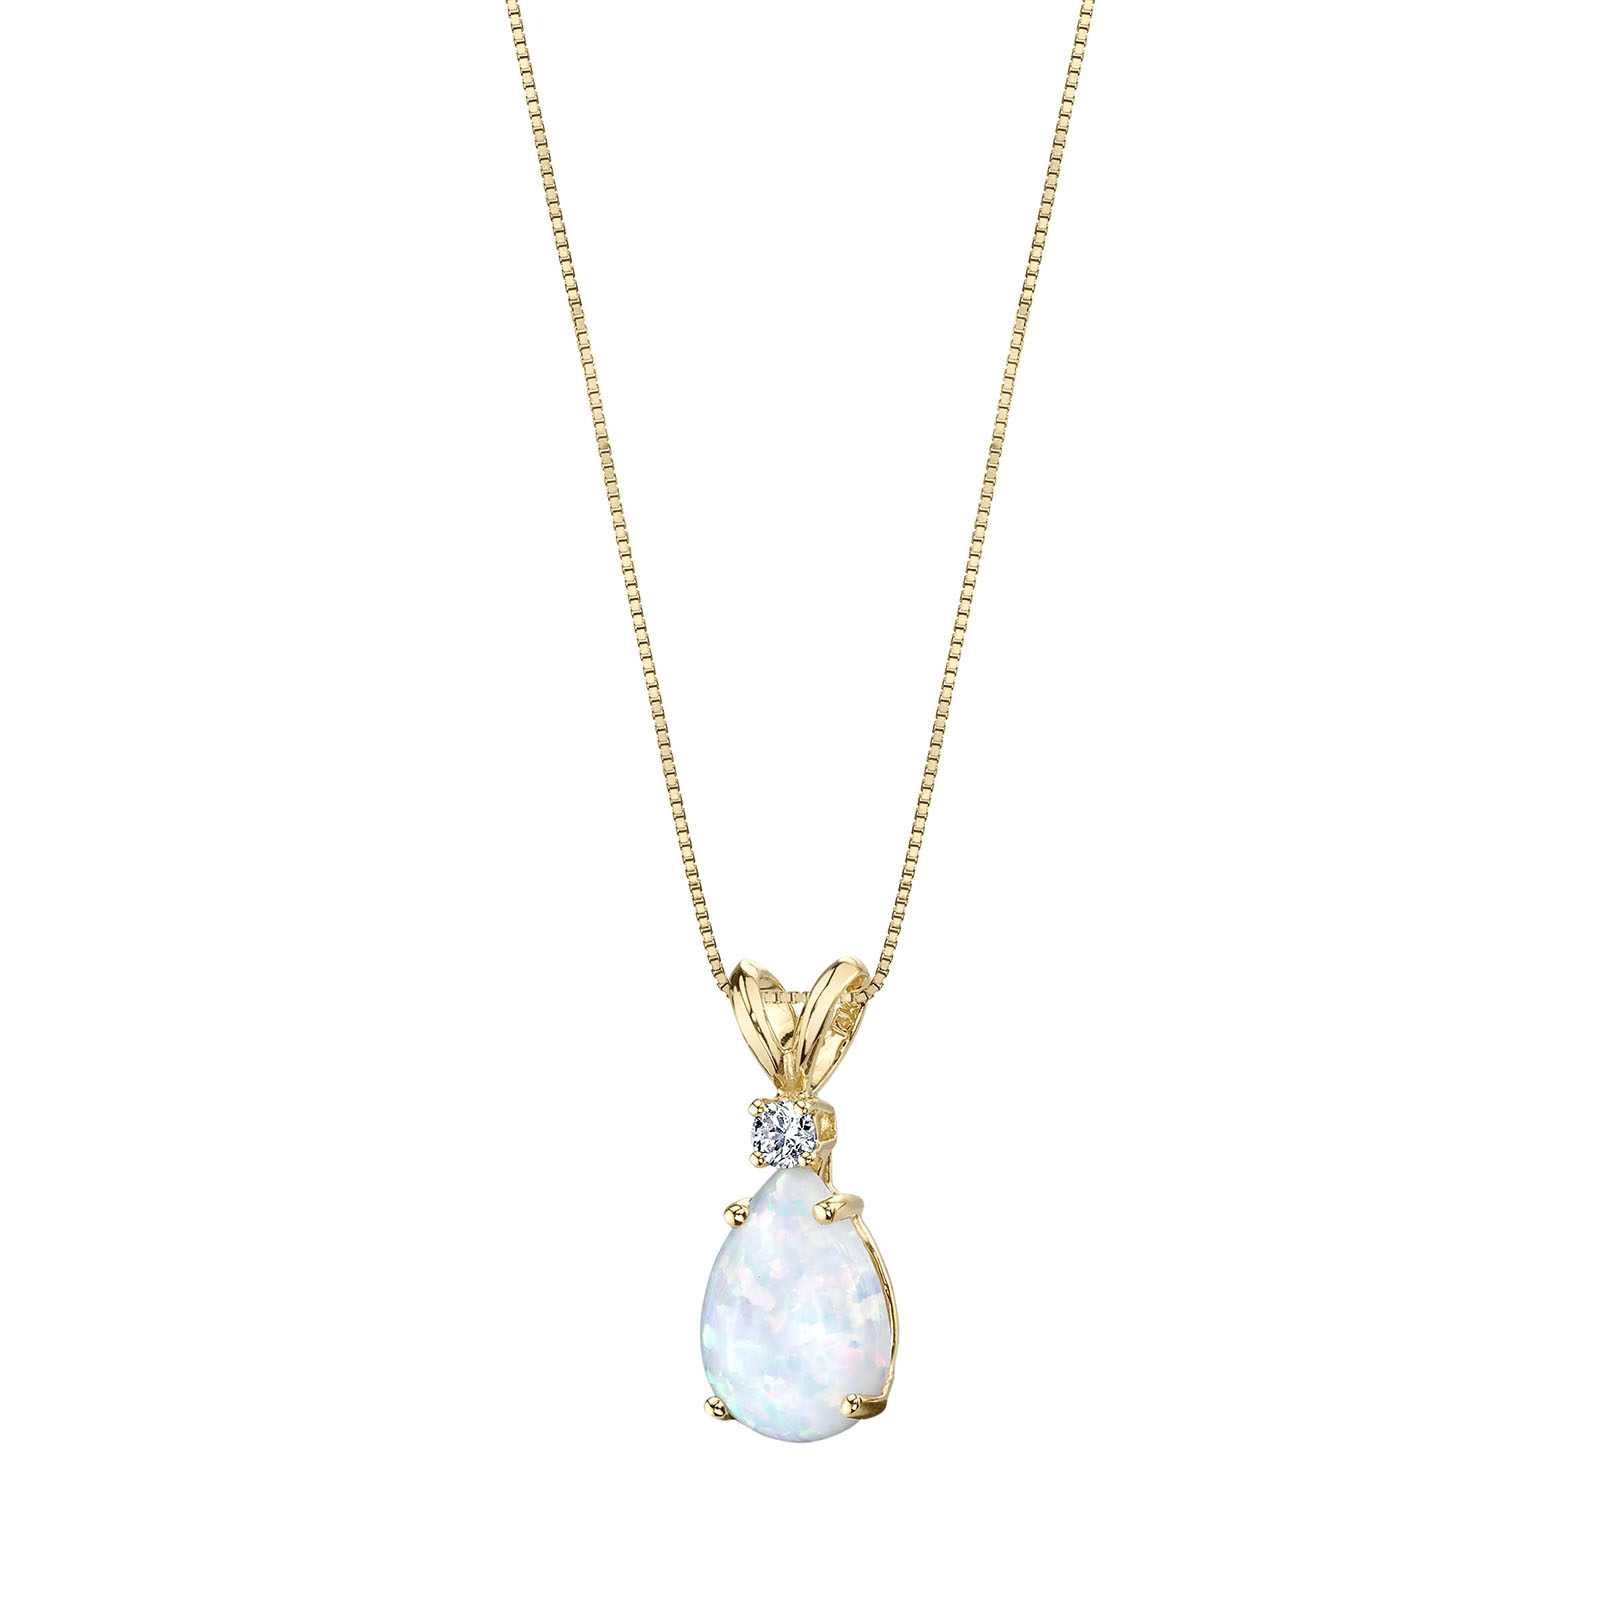 OPAL & DIAMOND 9CT GOLD PENDANT NECKLACE WITH GOLD PLATED SILVER CHAIN